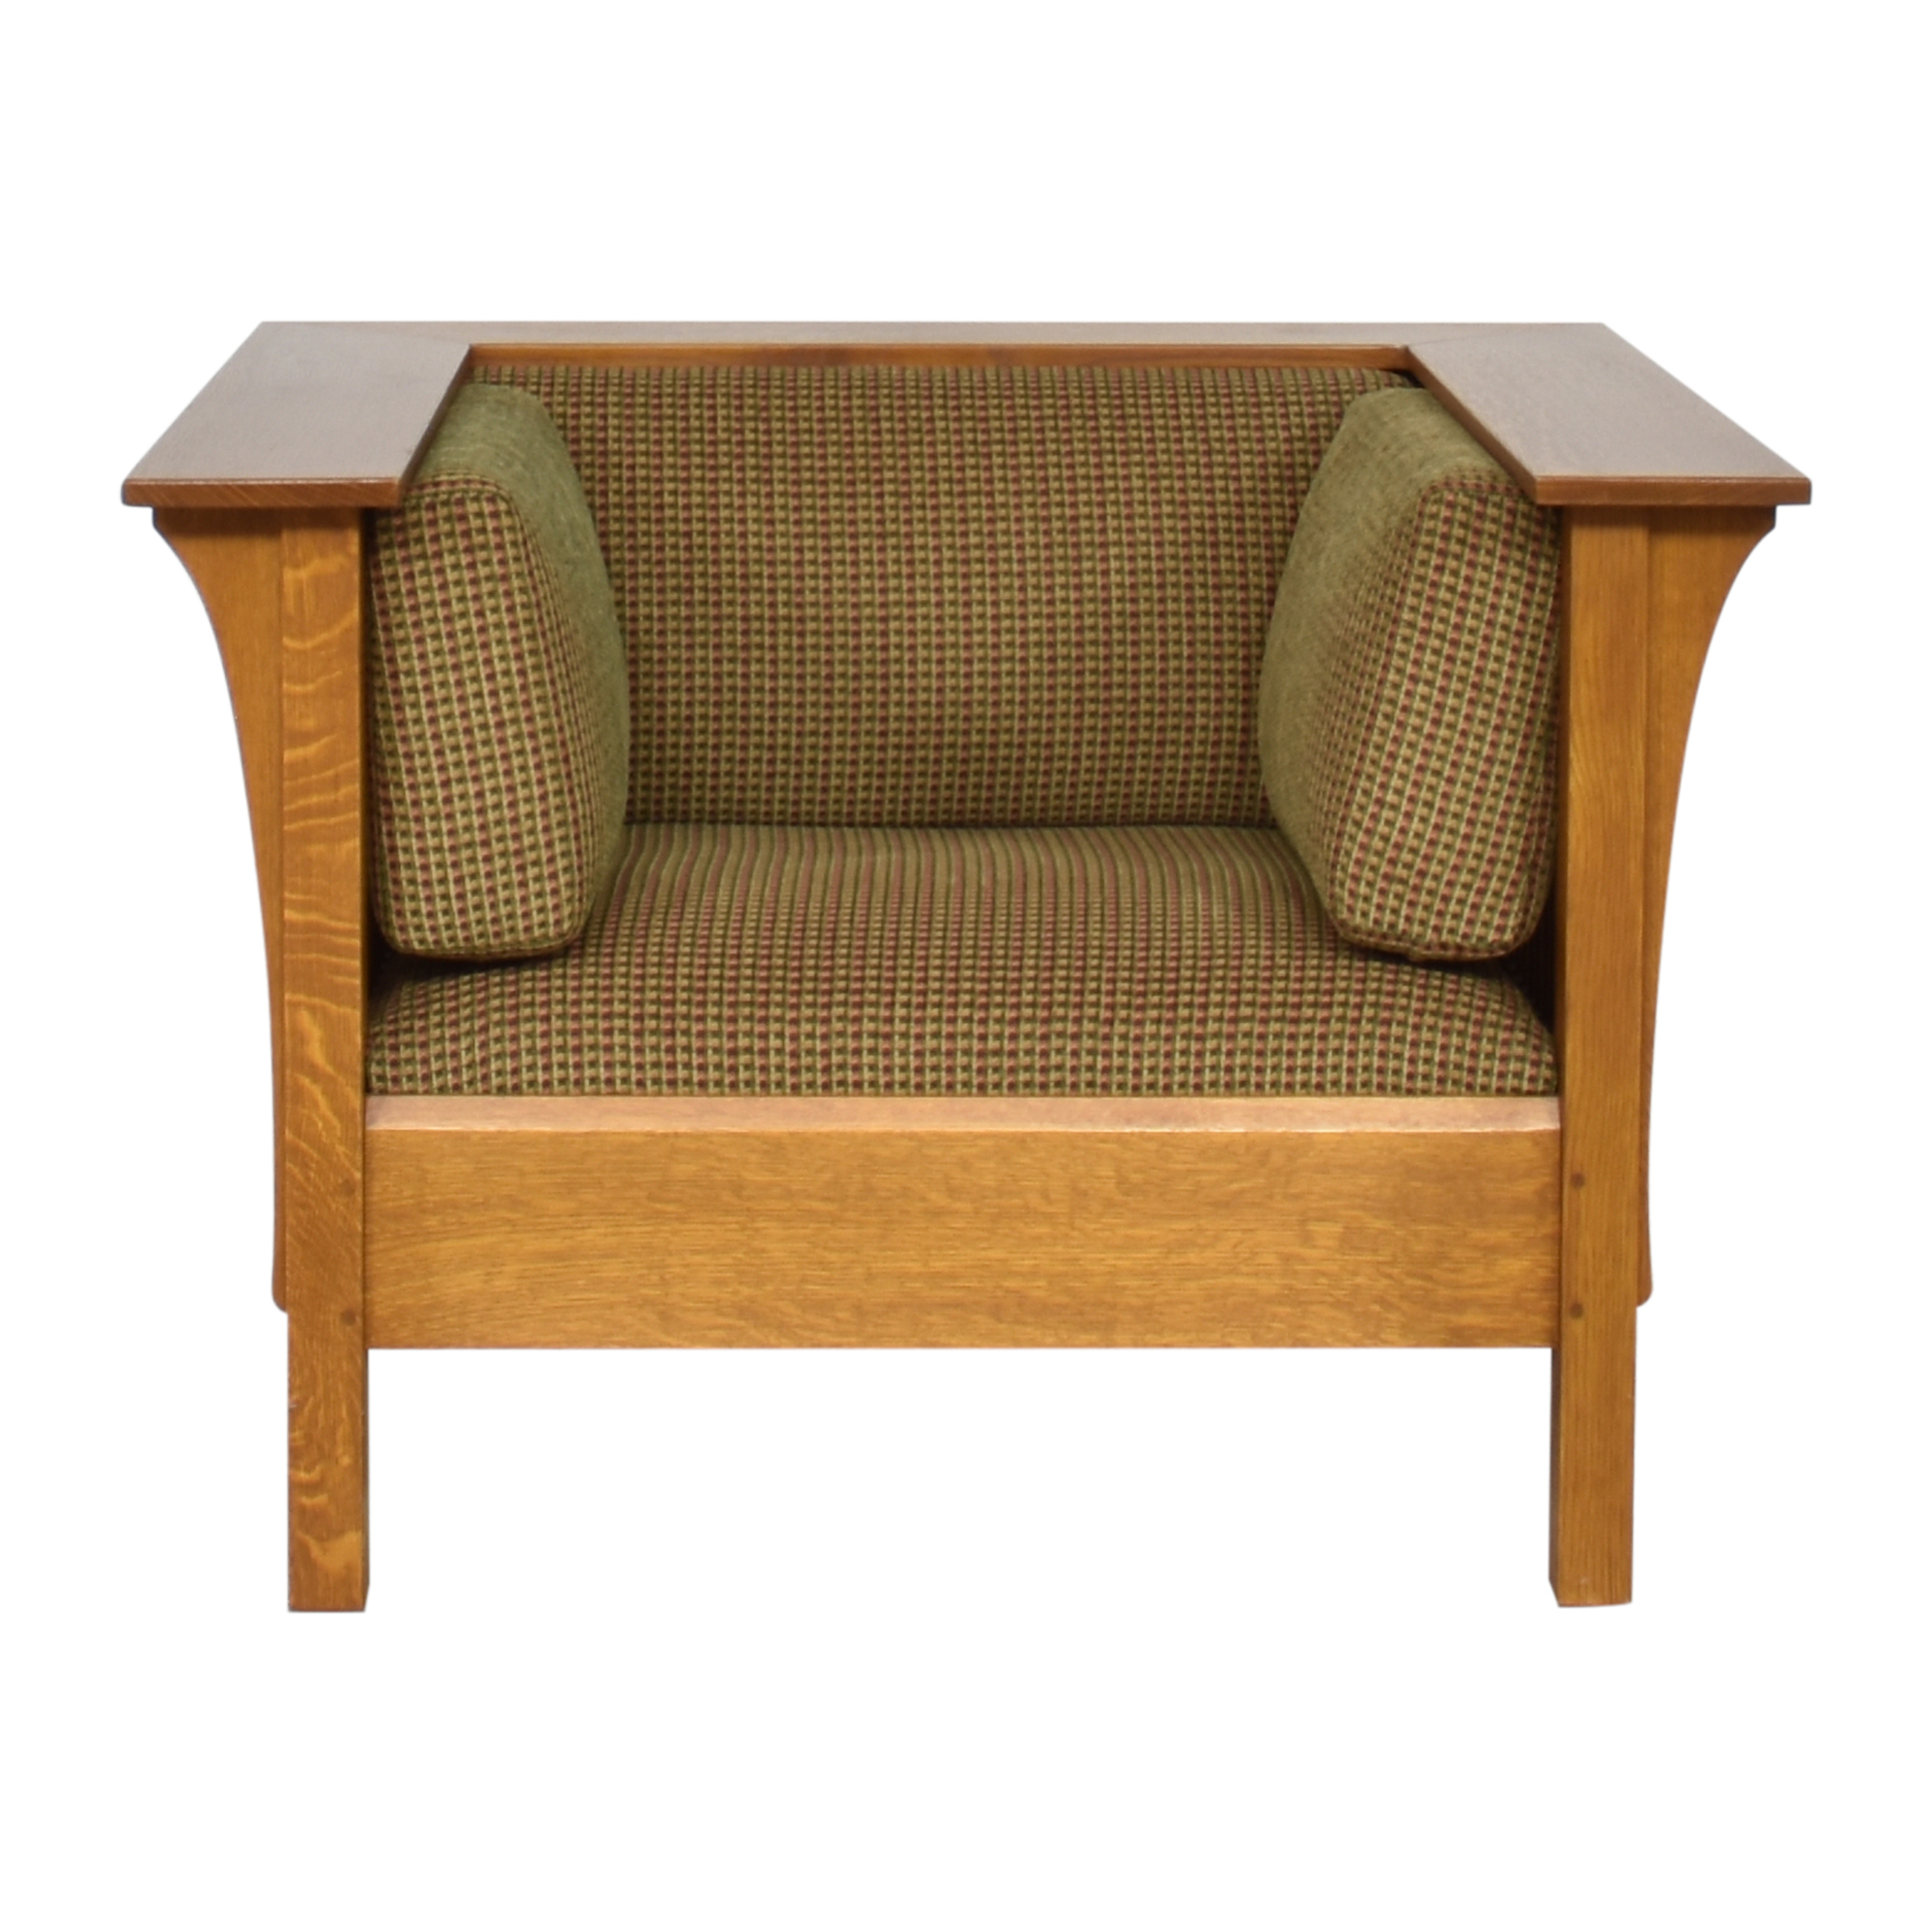 Stickley Mission Prairie Spindle Chair sale